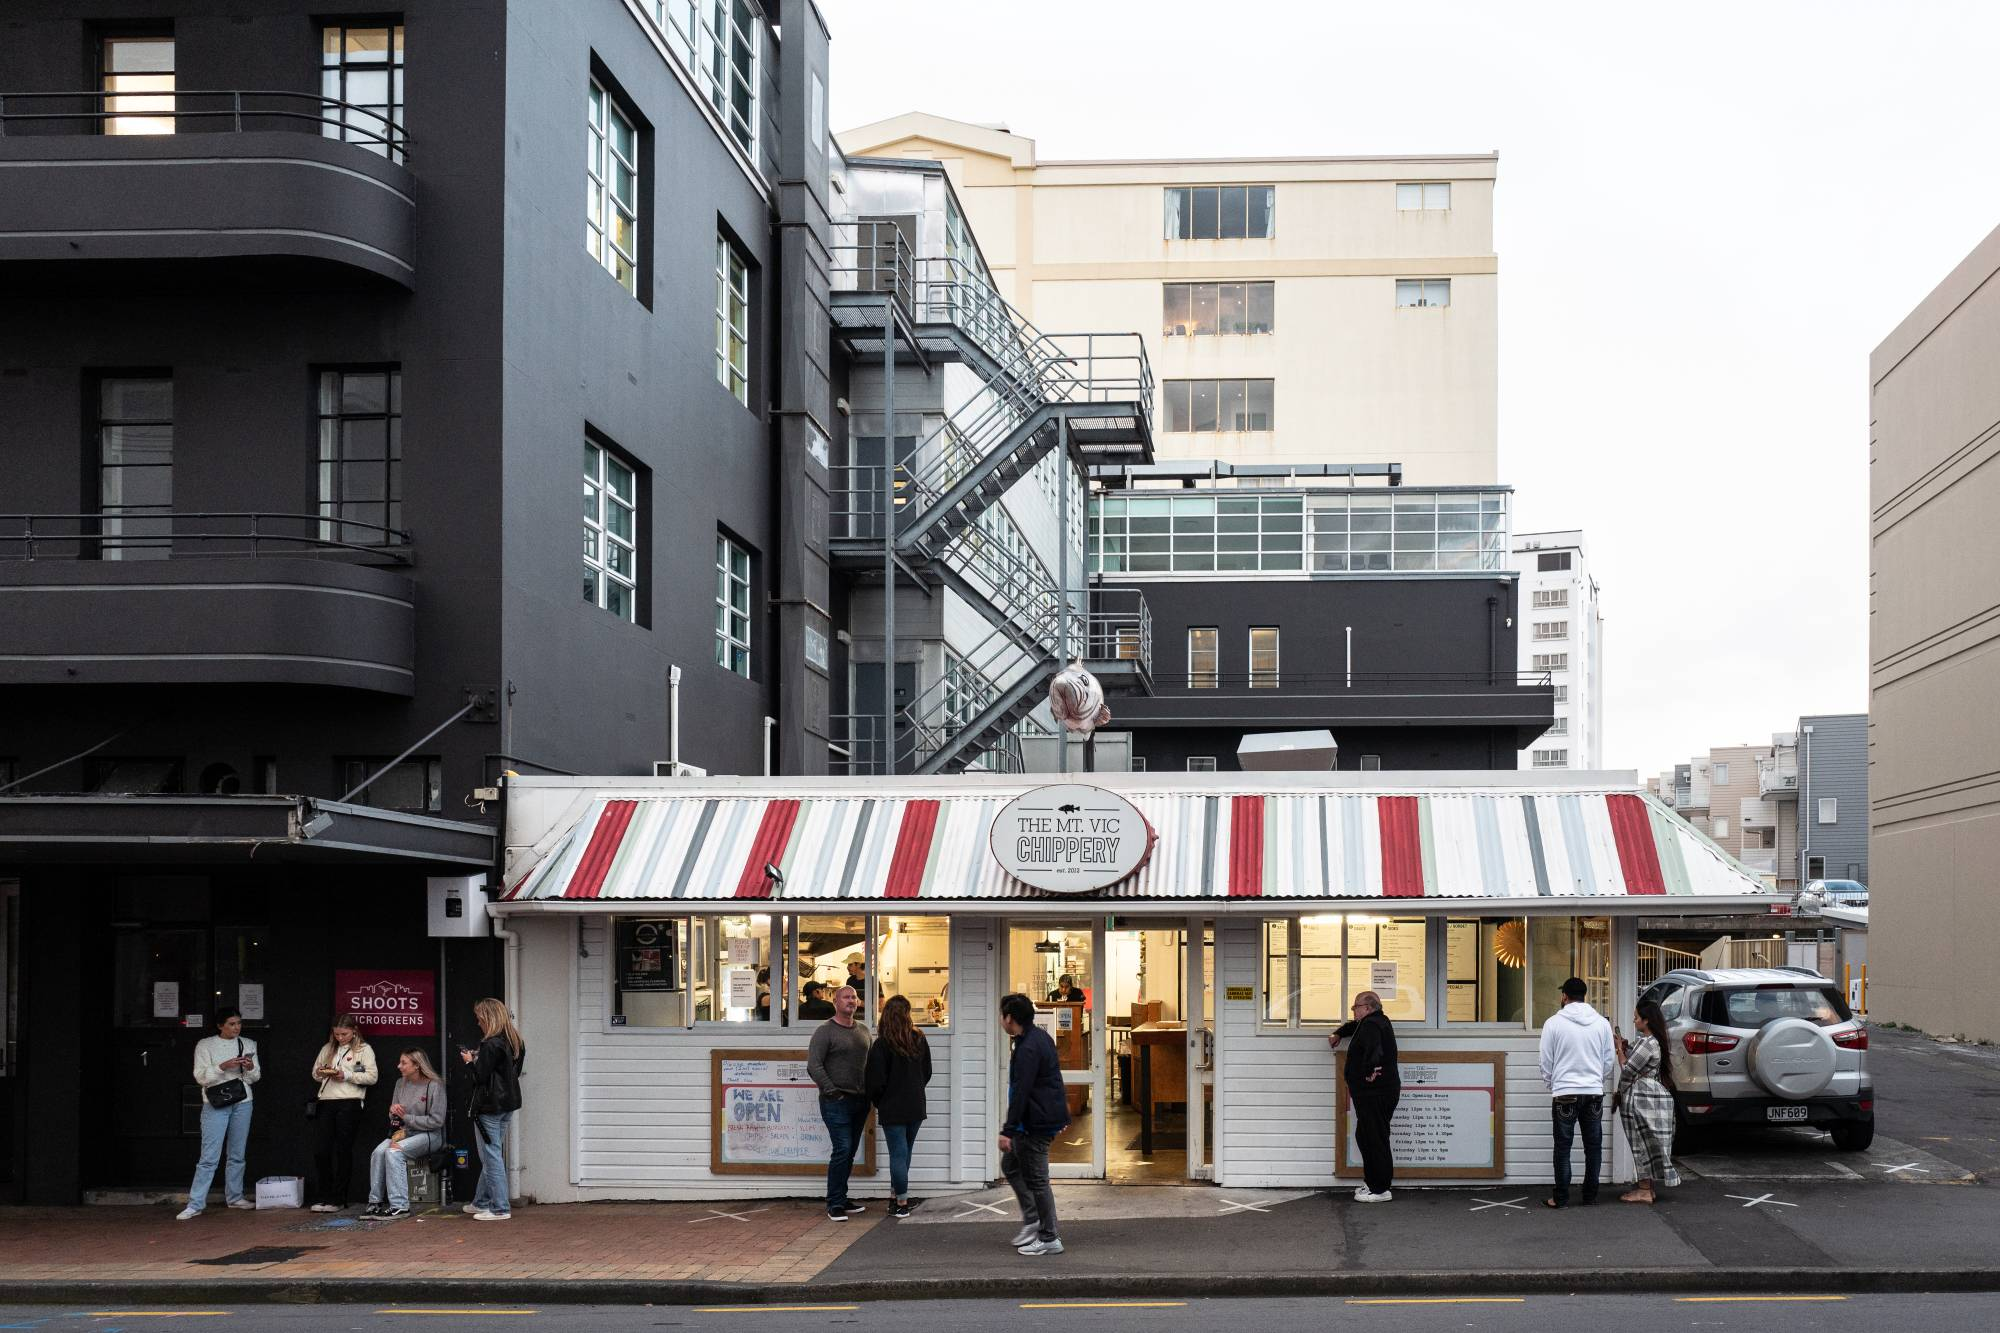 Customers maintain social distancing while they wait outside a fast food restaurant during a staged exit from New Zealand's coronavirus lockdown in Wellington on Thursday. | BLOOMBERG